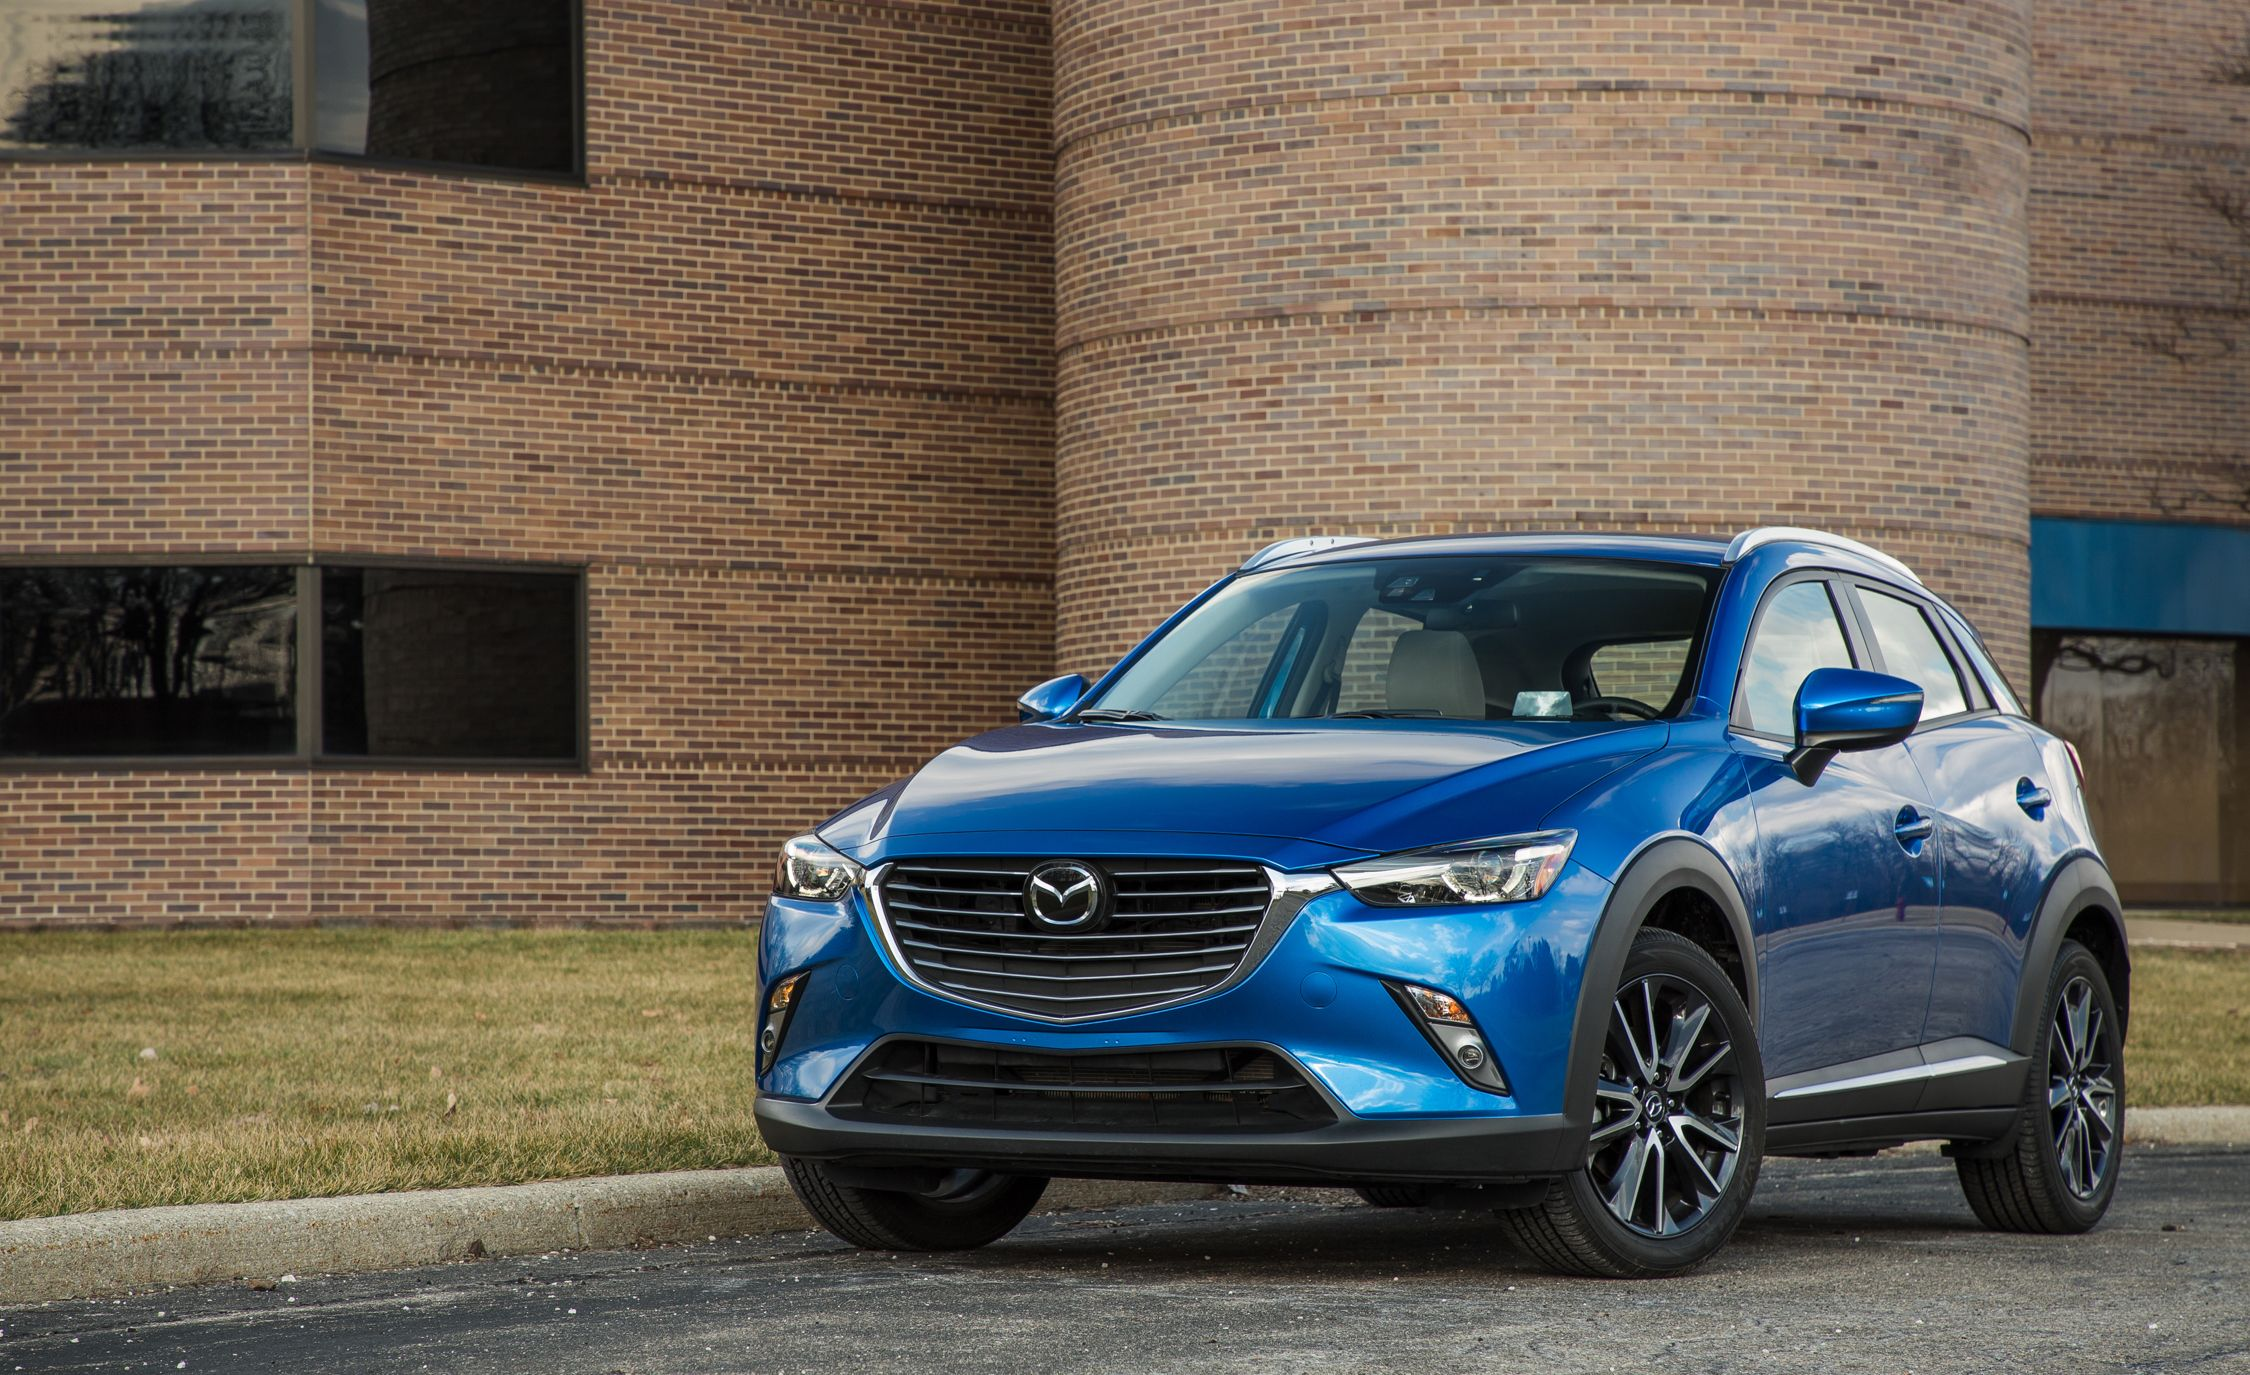 2018 mazda cx 3 engine and transmission review car and driver. Black Bedroom Furniture Sets. Home Design Ideas